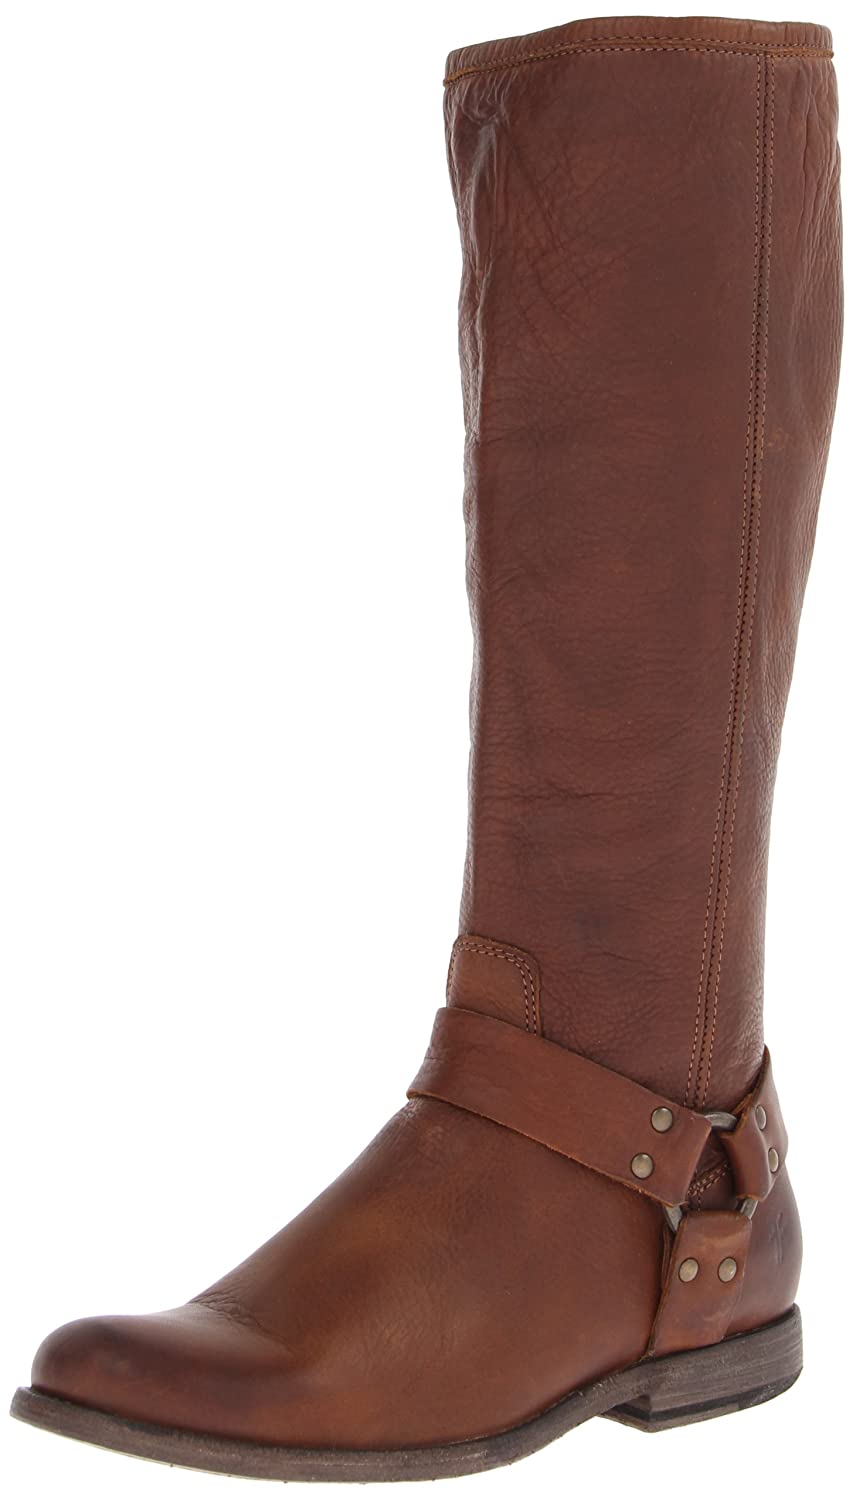 FRYE Women's Phillip Harness Tall Boot B004W25WOG 6 B(M) US|Cognac Soft Vintage Leather-76850